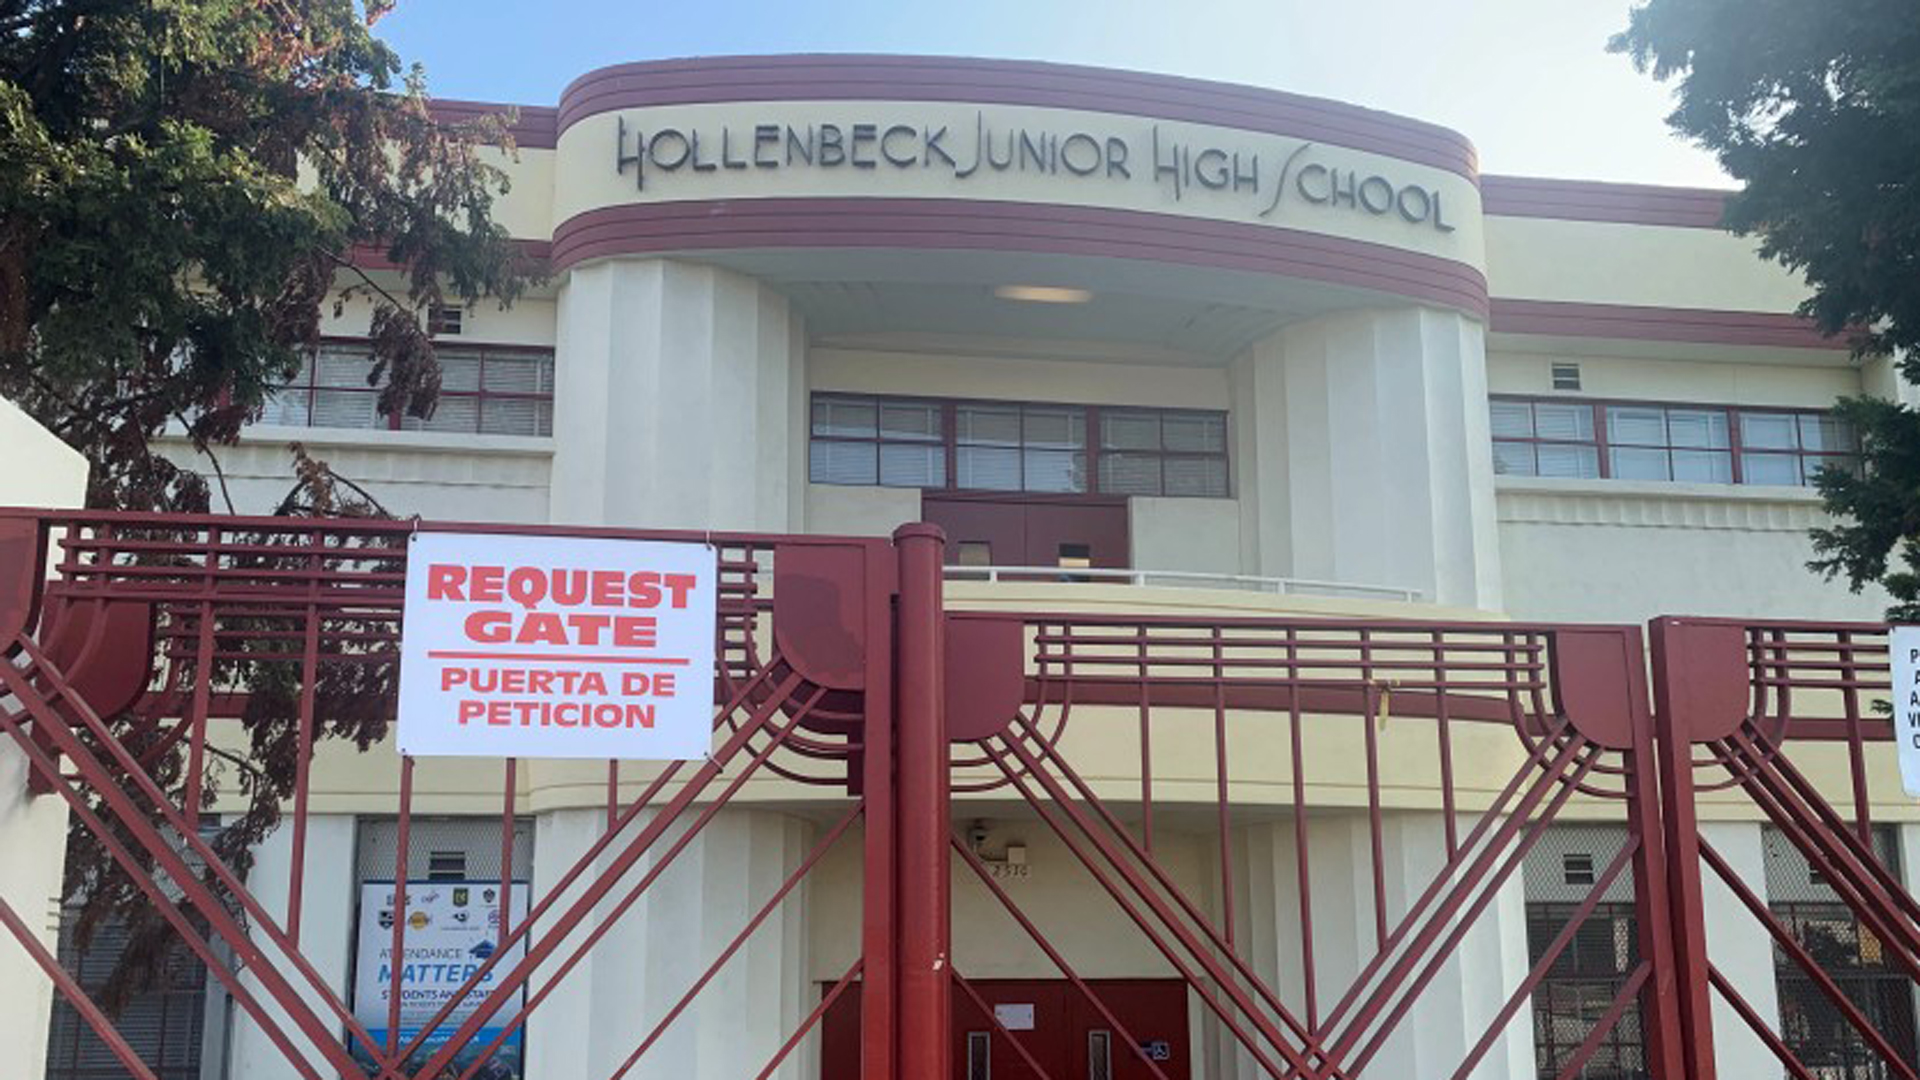 Hollenbeck Junior High School is seen in an undated image. (Credit: Sonali Kohli/Los Angeles TImes)